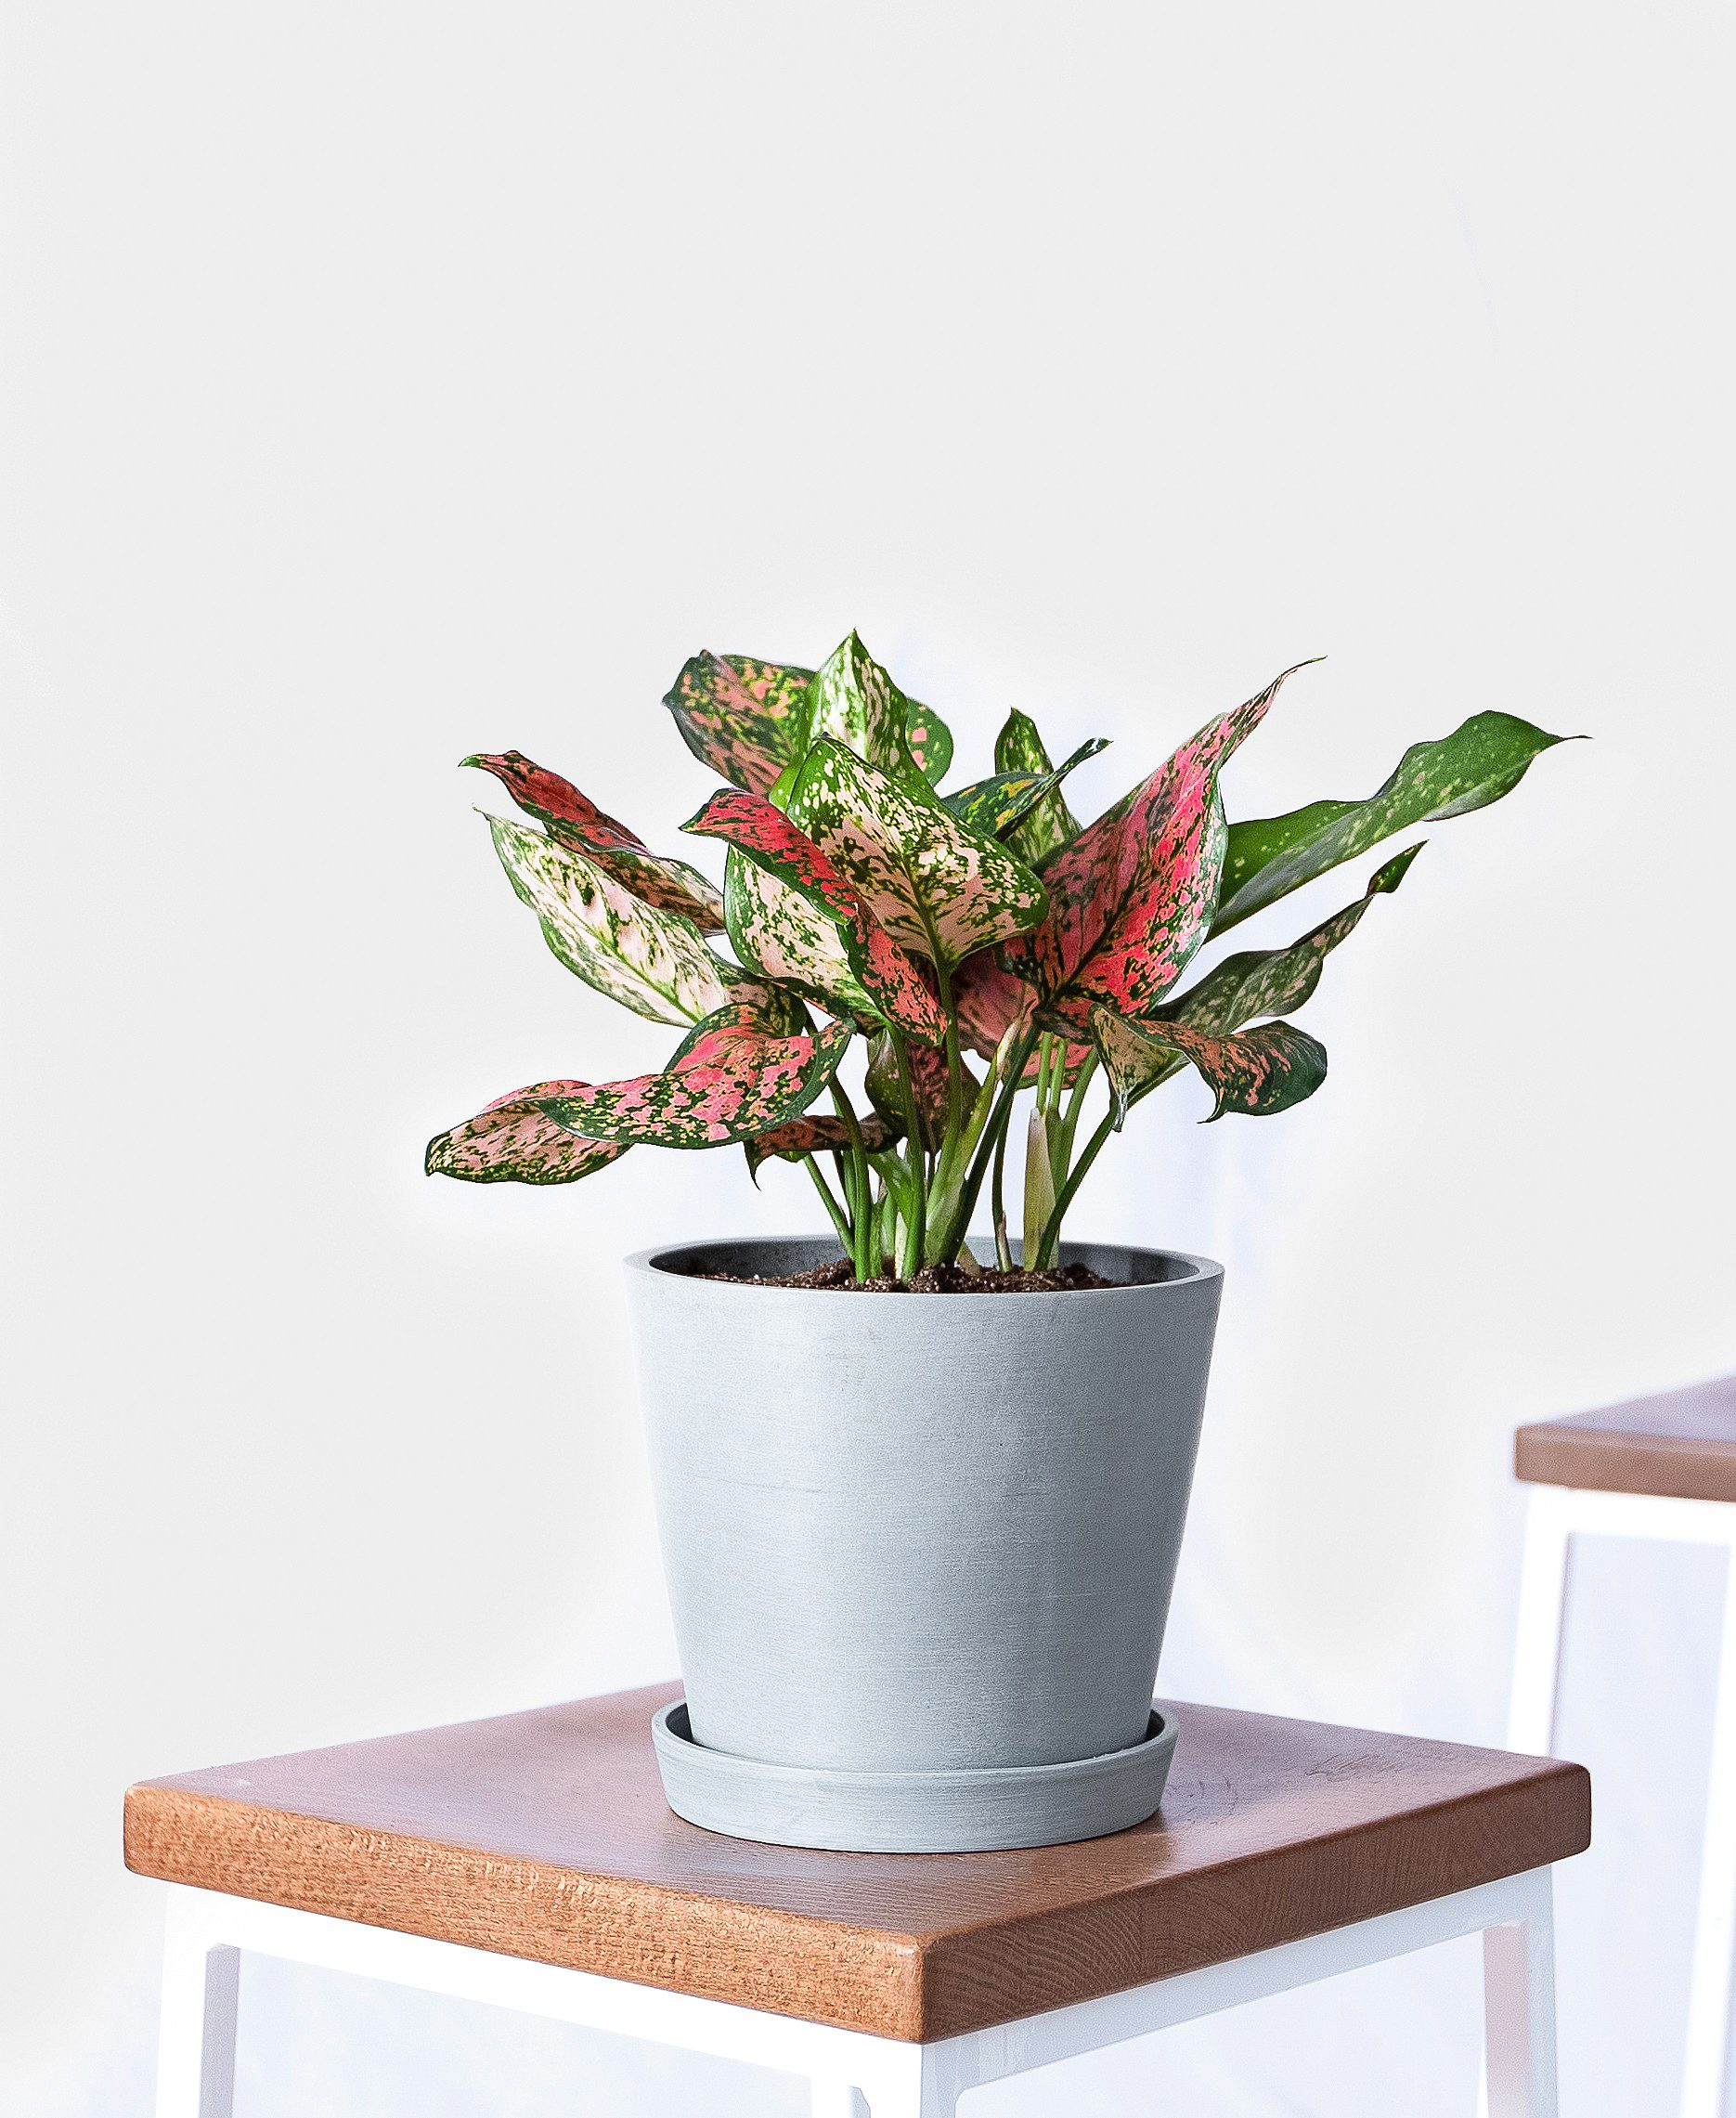 A pink and green Chinese evergreen in a white container.